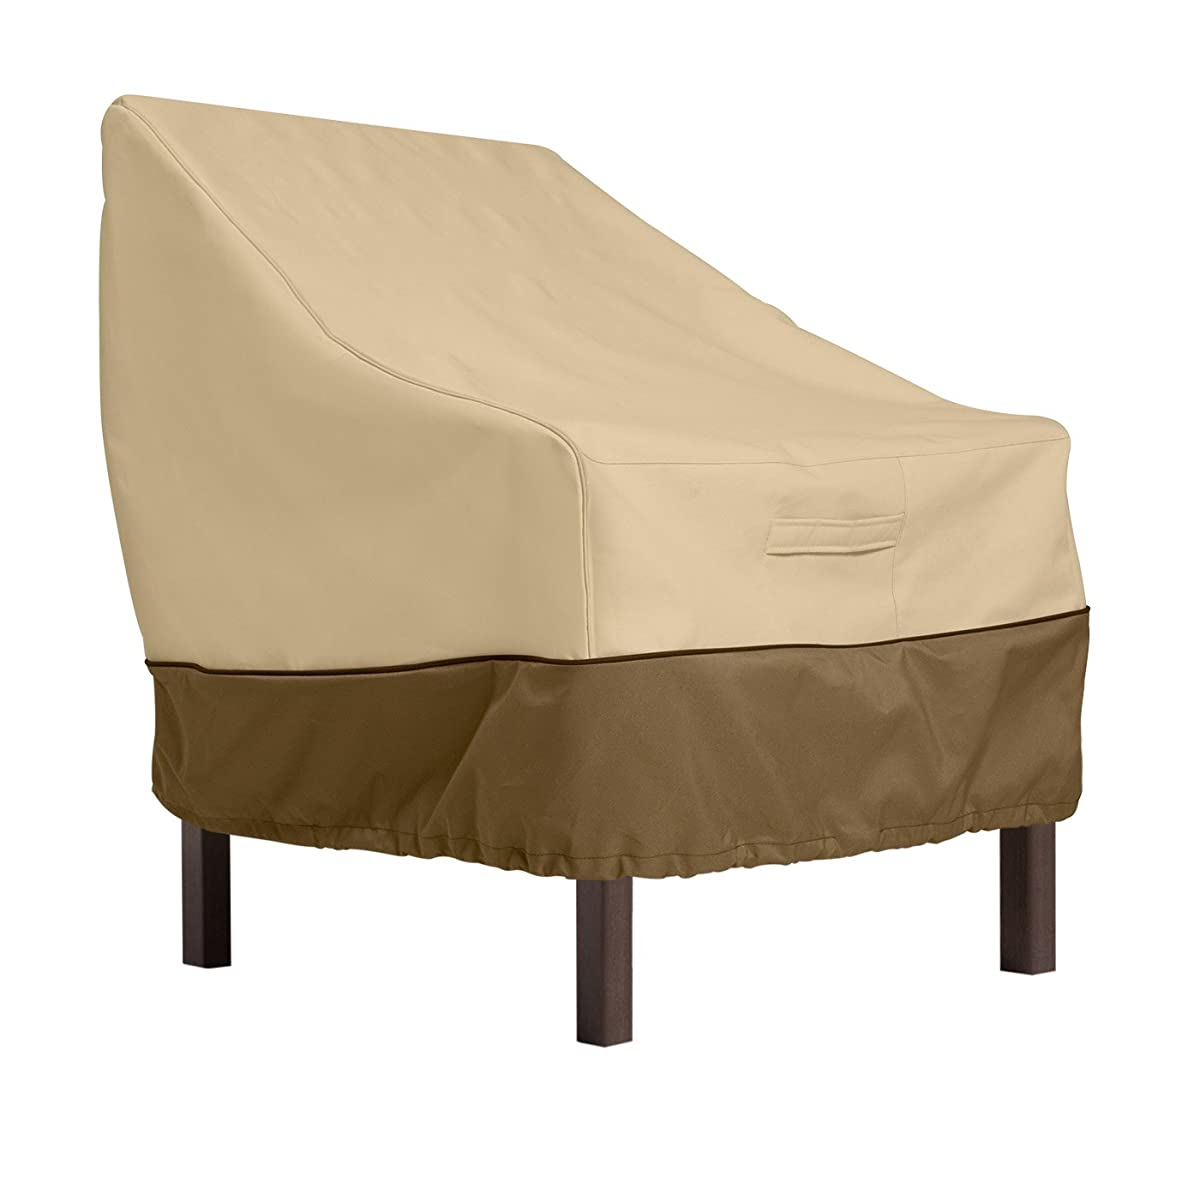 Classic Accessories Veranda Standard Patio Chair Cover